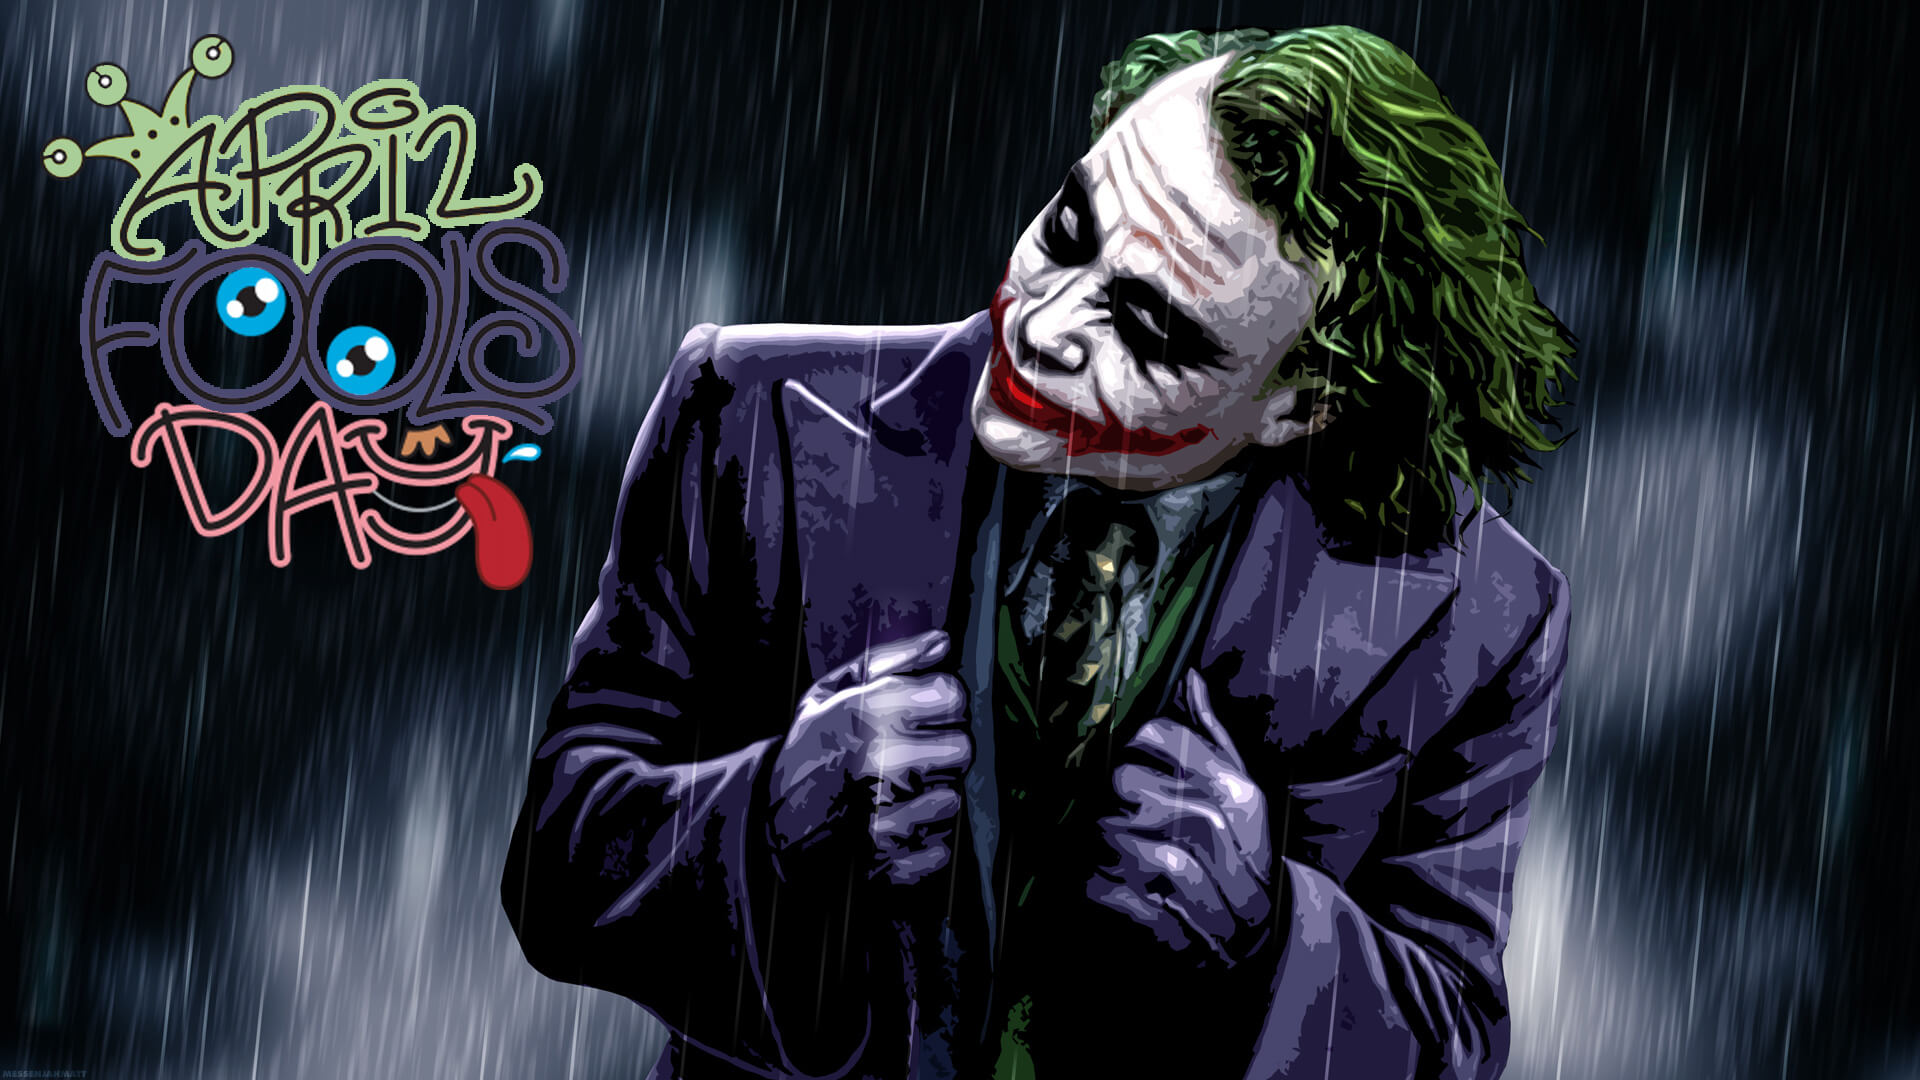 april fools day joker wishes pc desktop hd wallpaper